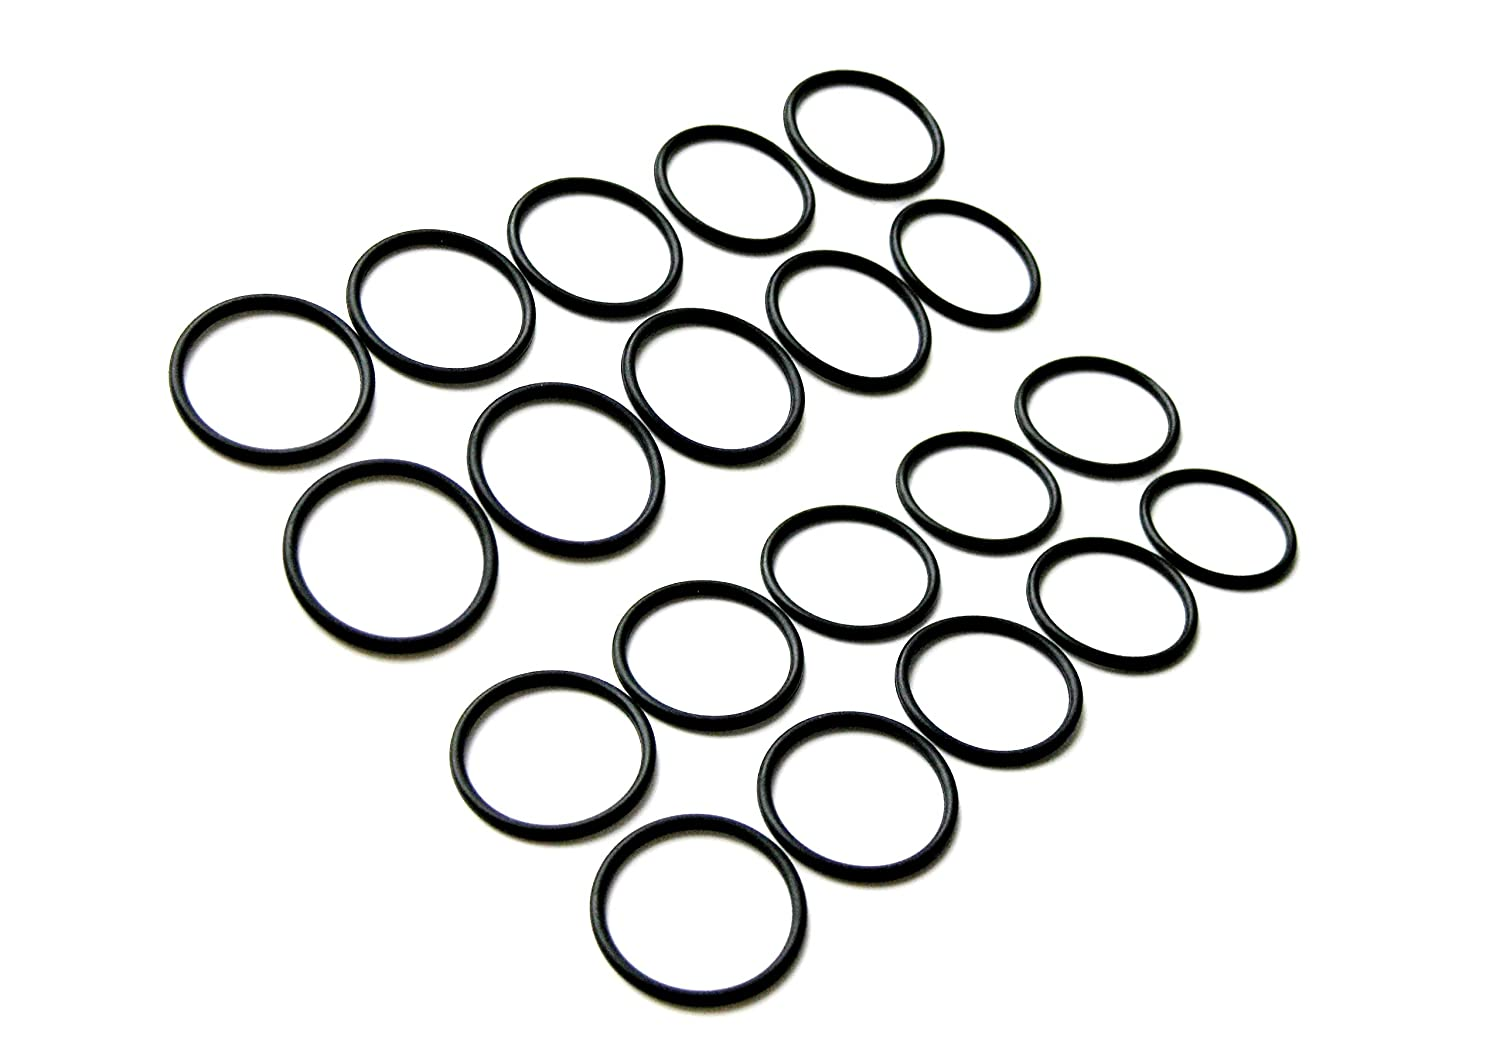 NICKSTON 20pcs Multi Purpose NBR70 Rubber Replacement O-Rings Gaskets Washers Seals Set for Home and Plumbing 7//16ID x 1//16 CS 10.82mm ID x 1.78mm CS Outdoor Automotive